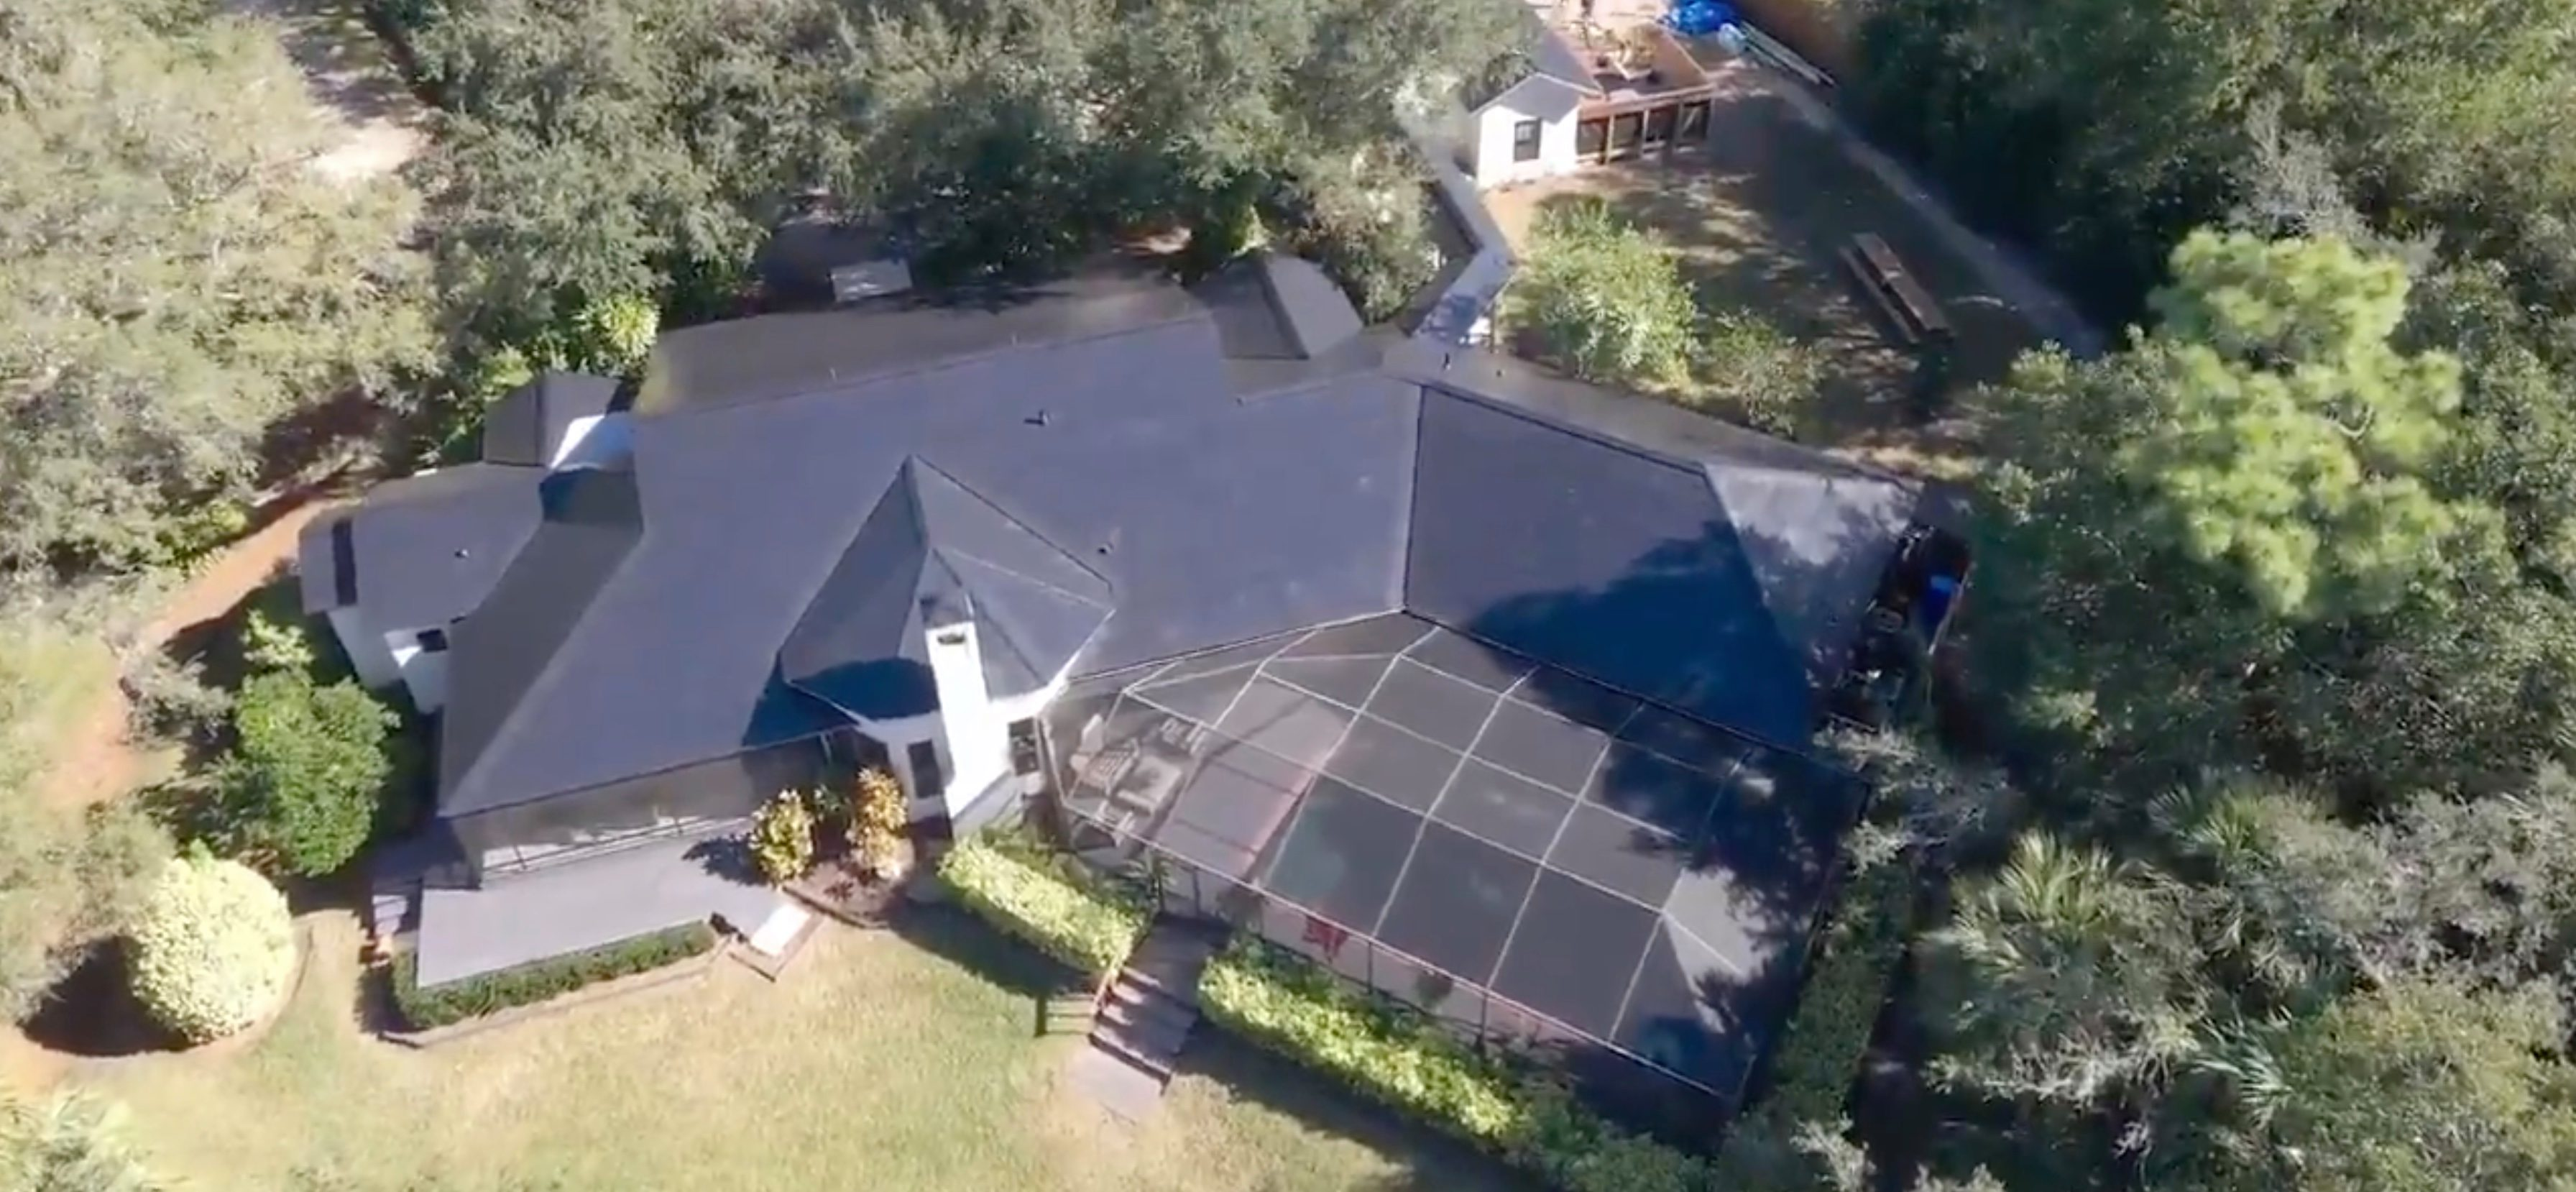 Giant Tesla Solar Roofs: Jaw dropping video gets response from Elon Musk